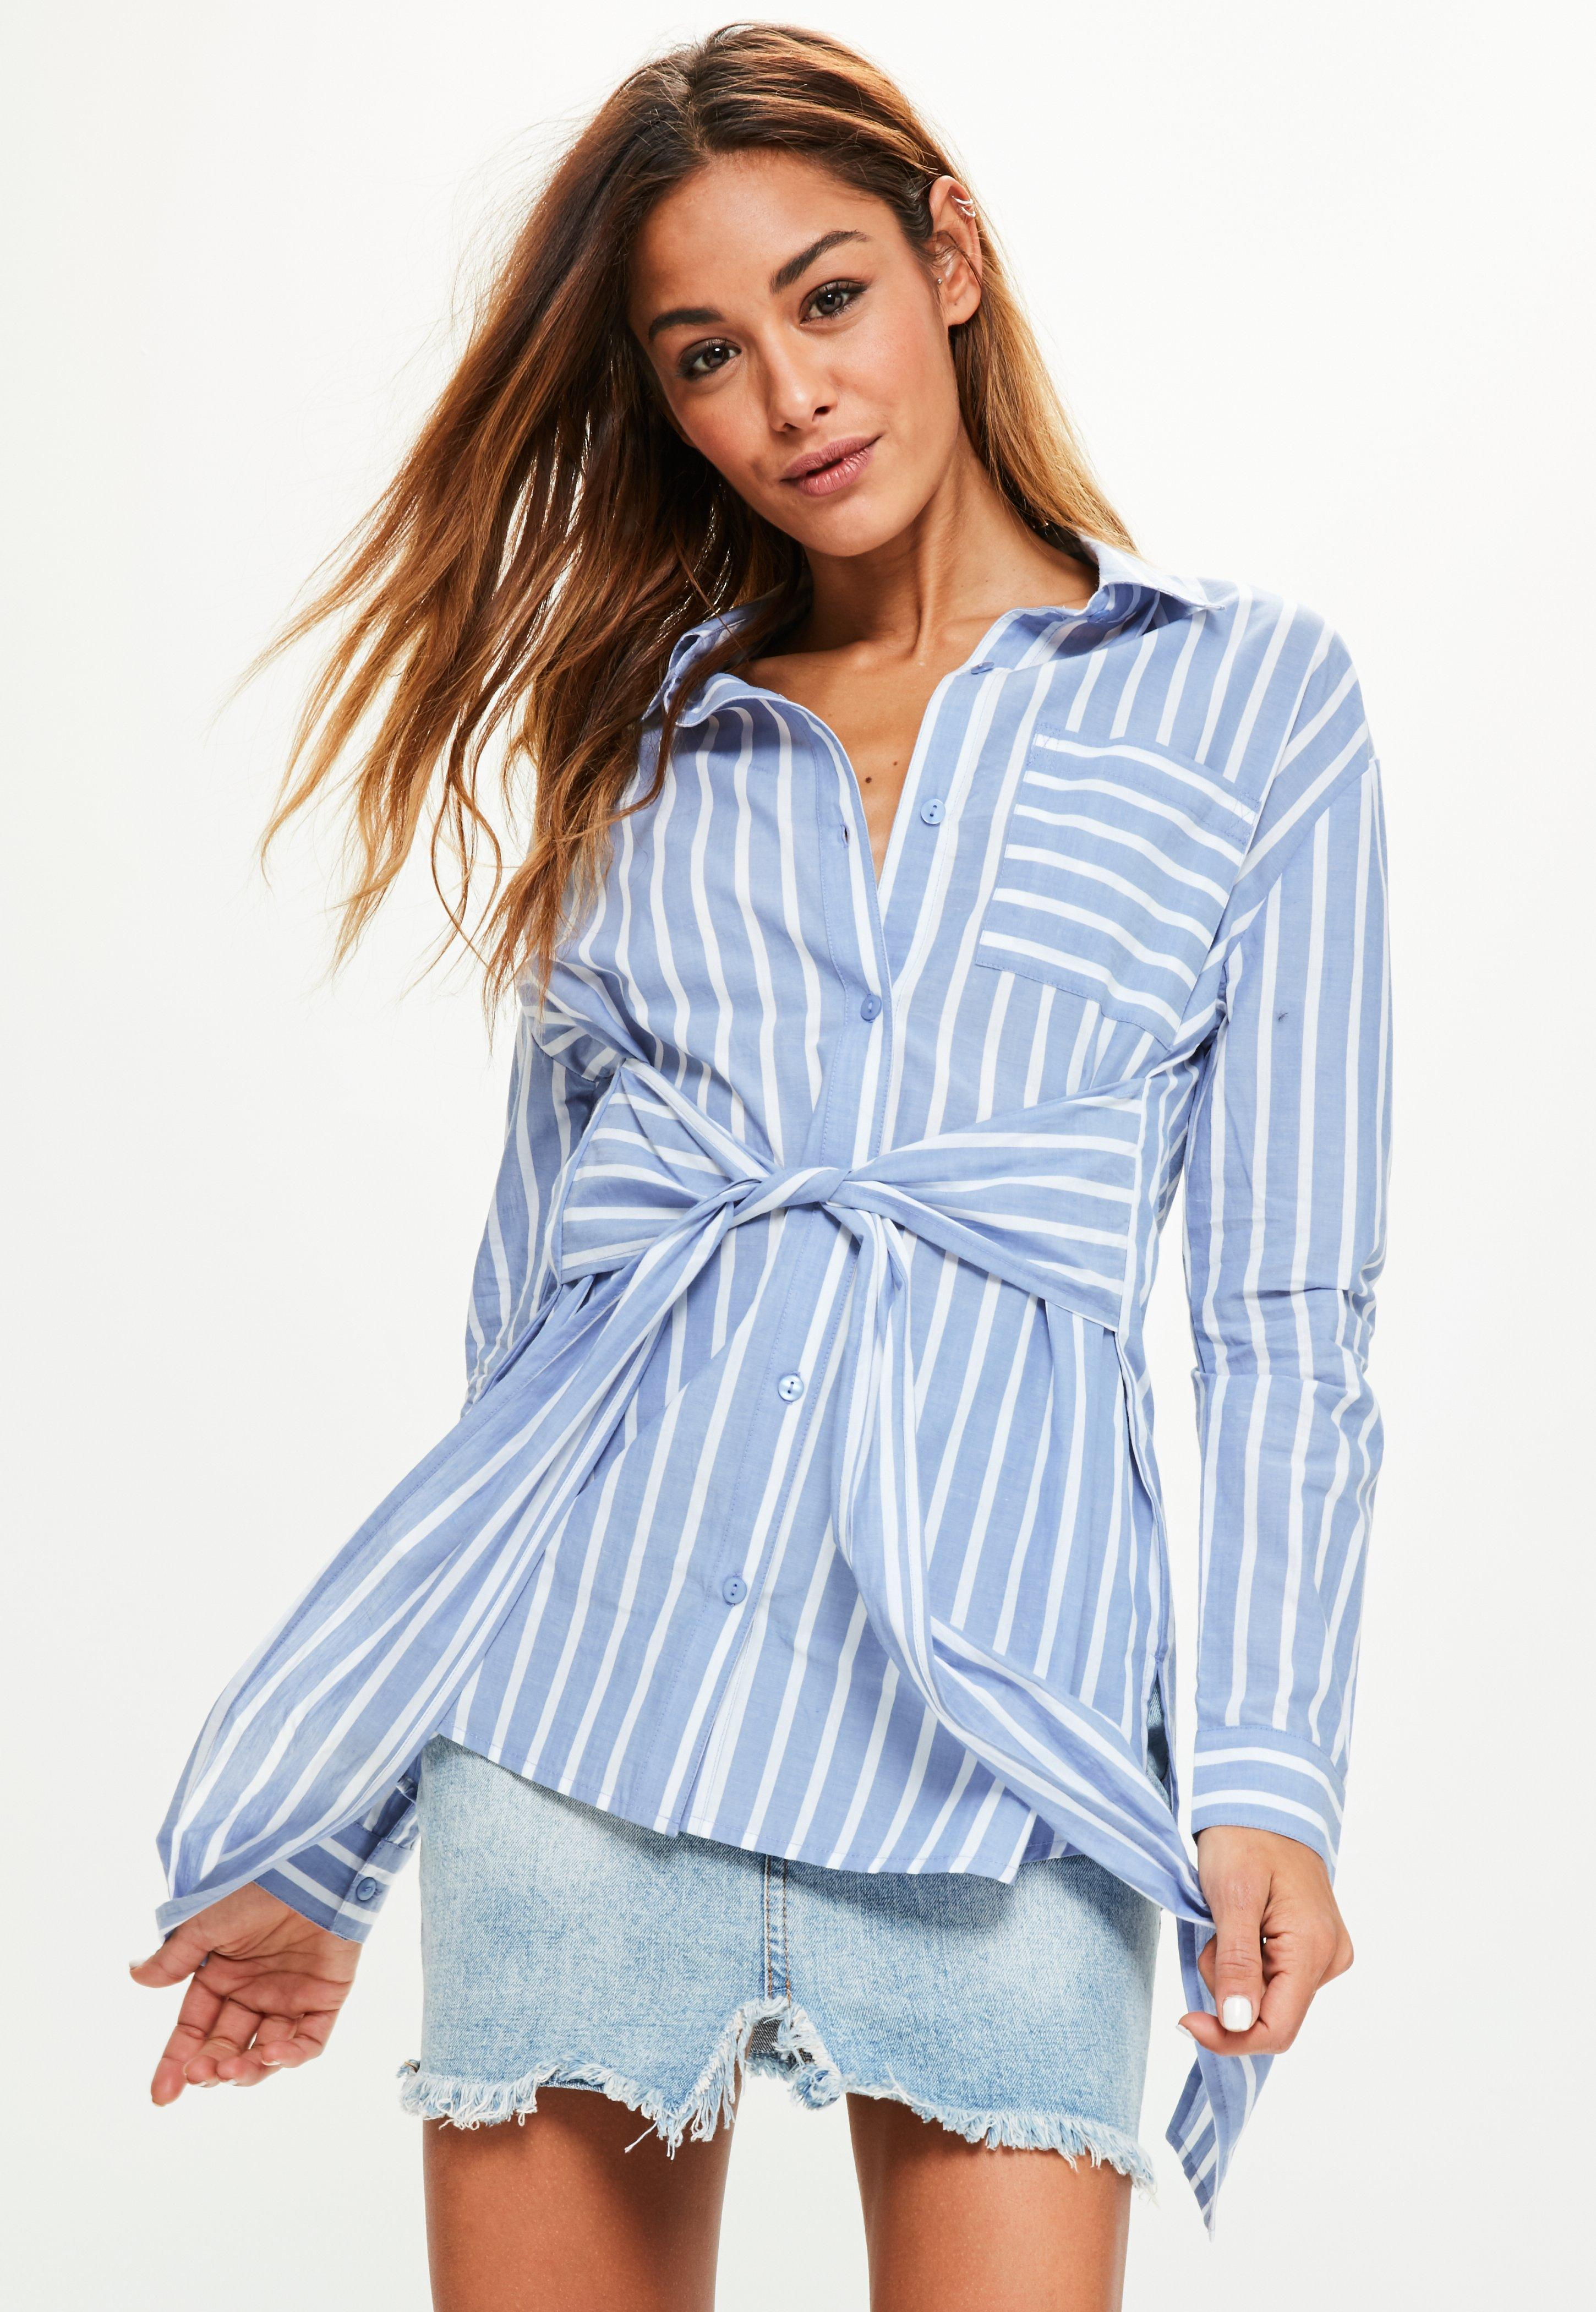 Low Price Fee Shipping Sale Online Sale Cheapest Price Missguided Stripe Tie Button Satin Front Shirt Discount Great Deals Clearance Shop Huge Surprise ycytn5w